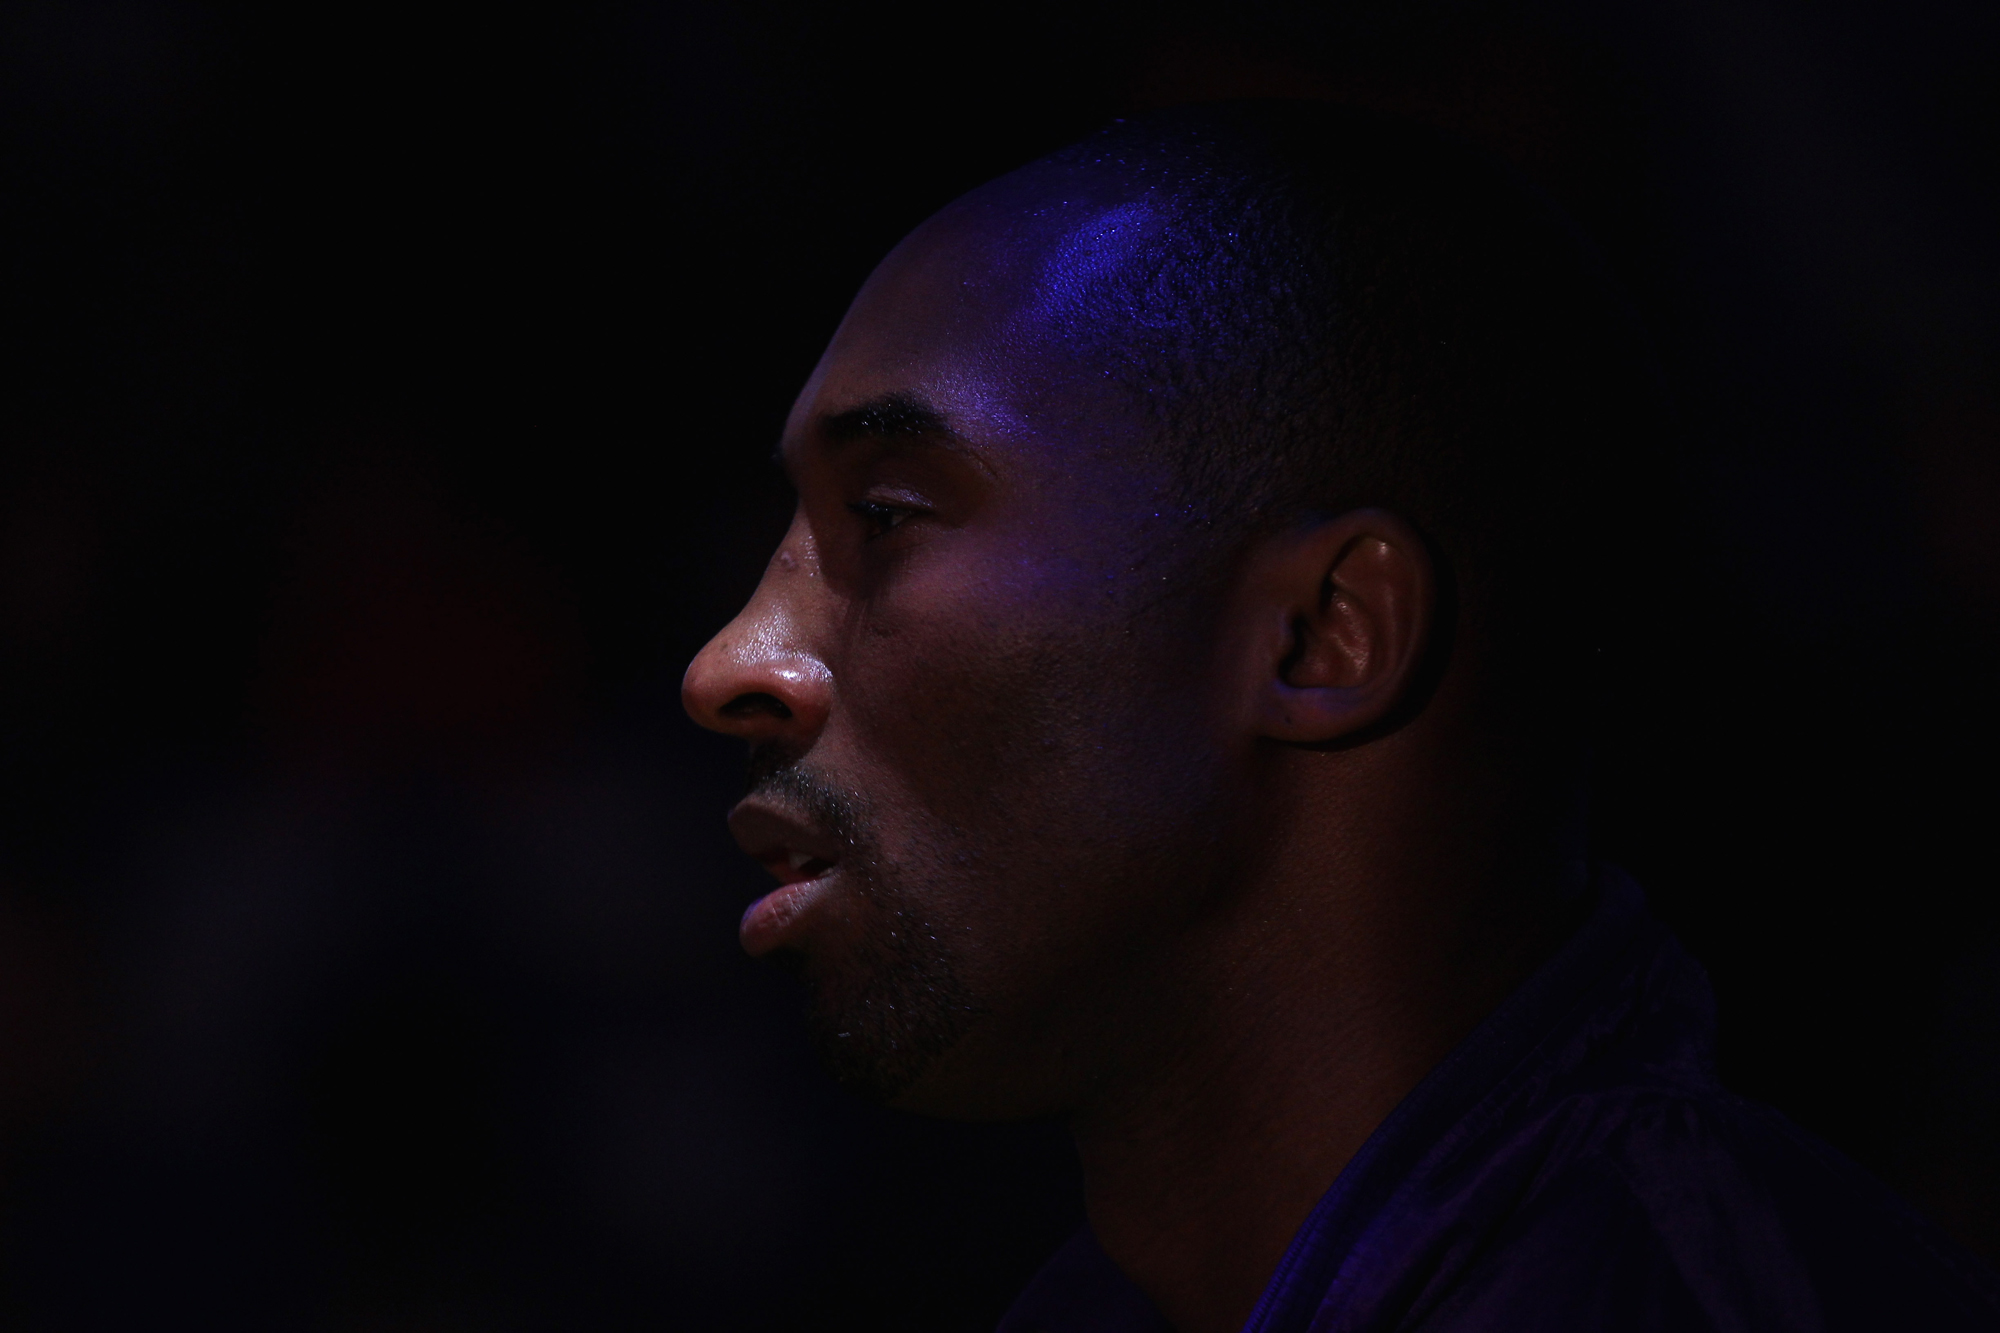 Kobe Bryant #24 of the Los Angeles Lakers stands on the side of the court while the Golden State Warriors are introduced before their game at Oracle Arena on March 27, 2012 in Oakland, California.